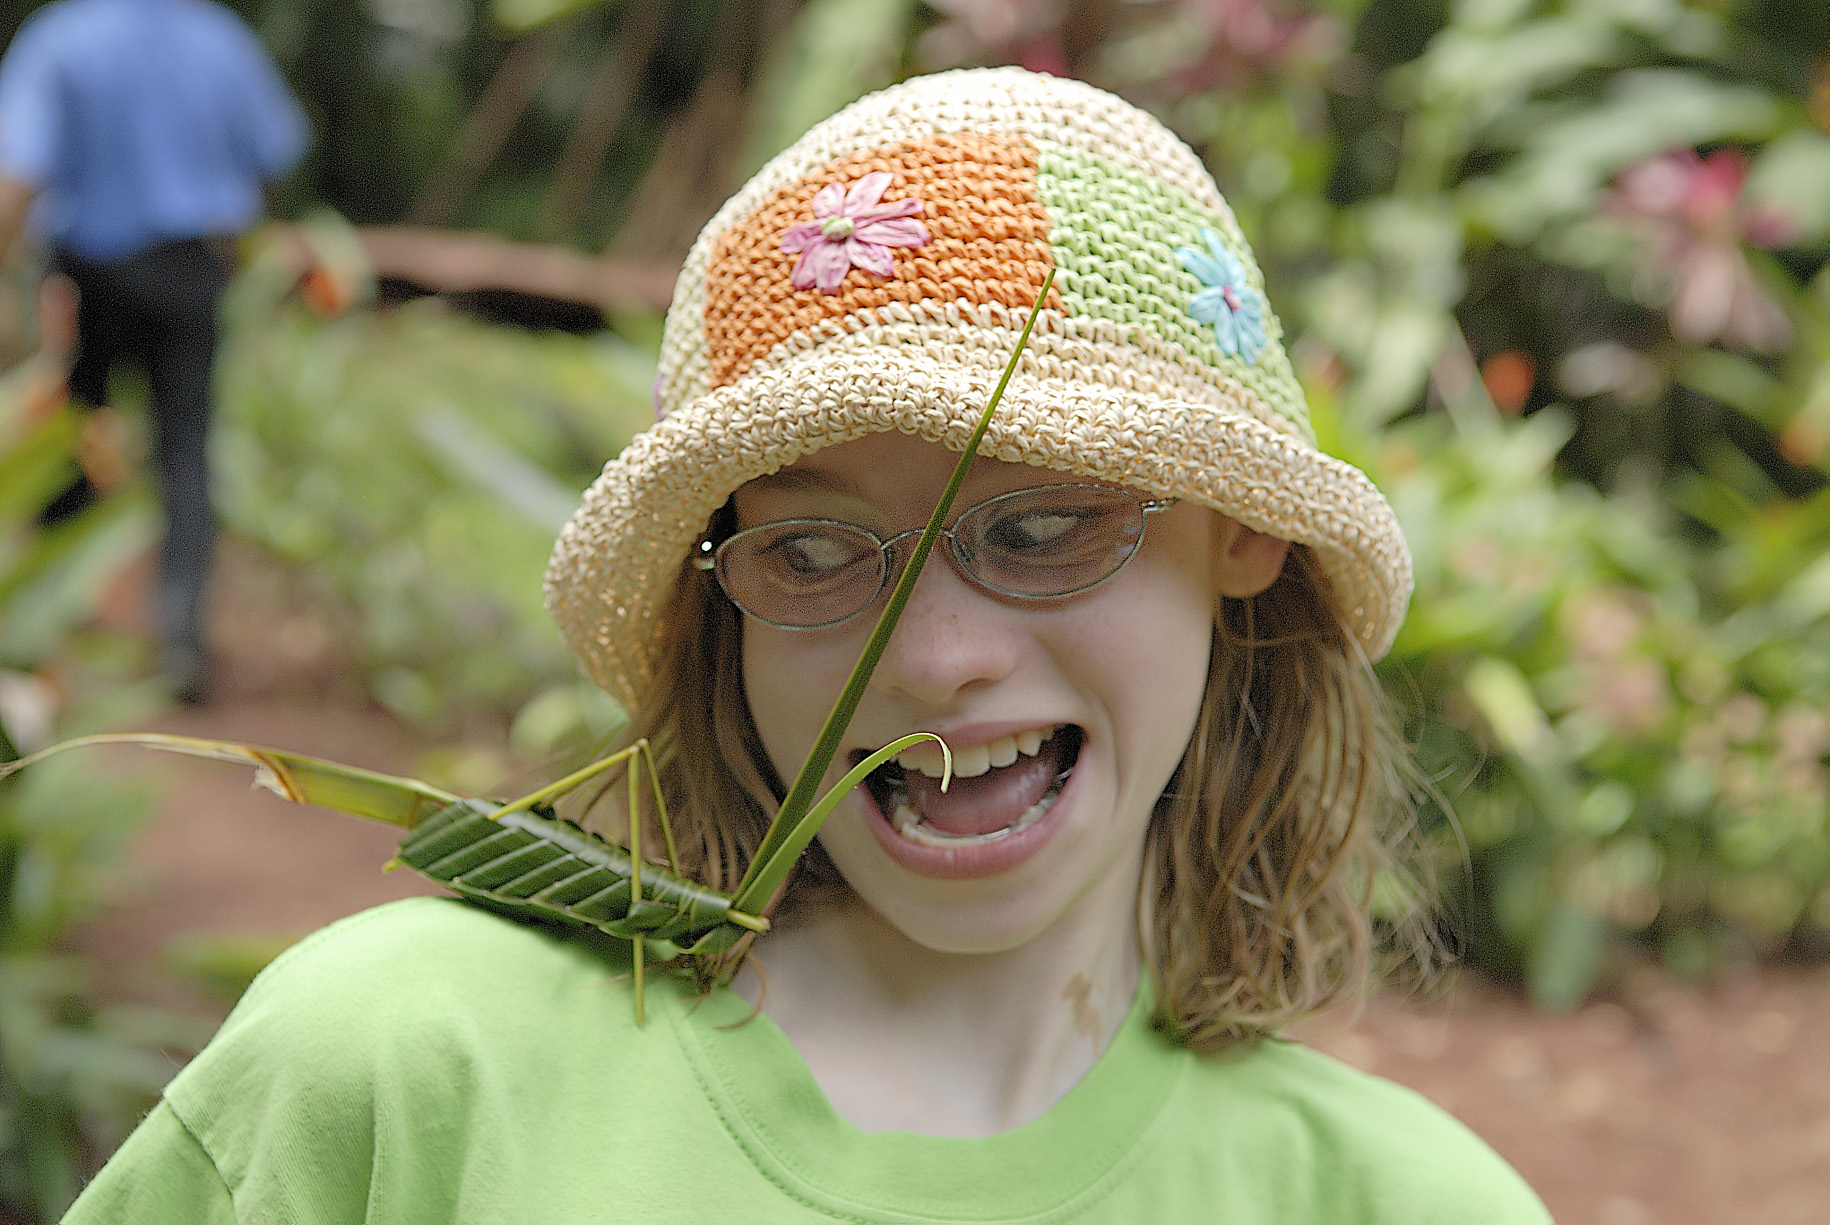 Our daughter is amateur actress and here she really sells her terror at this enormous grasshopper...made of grass by our guides in Costa Rica!